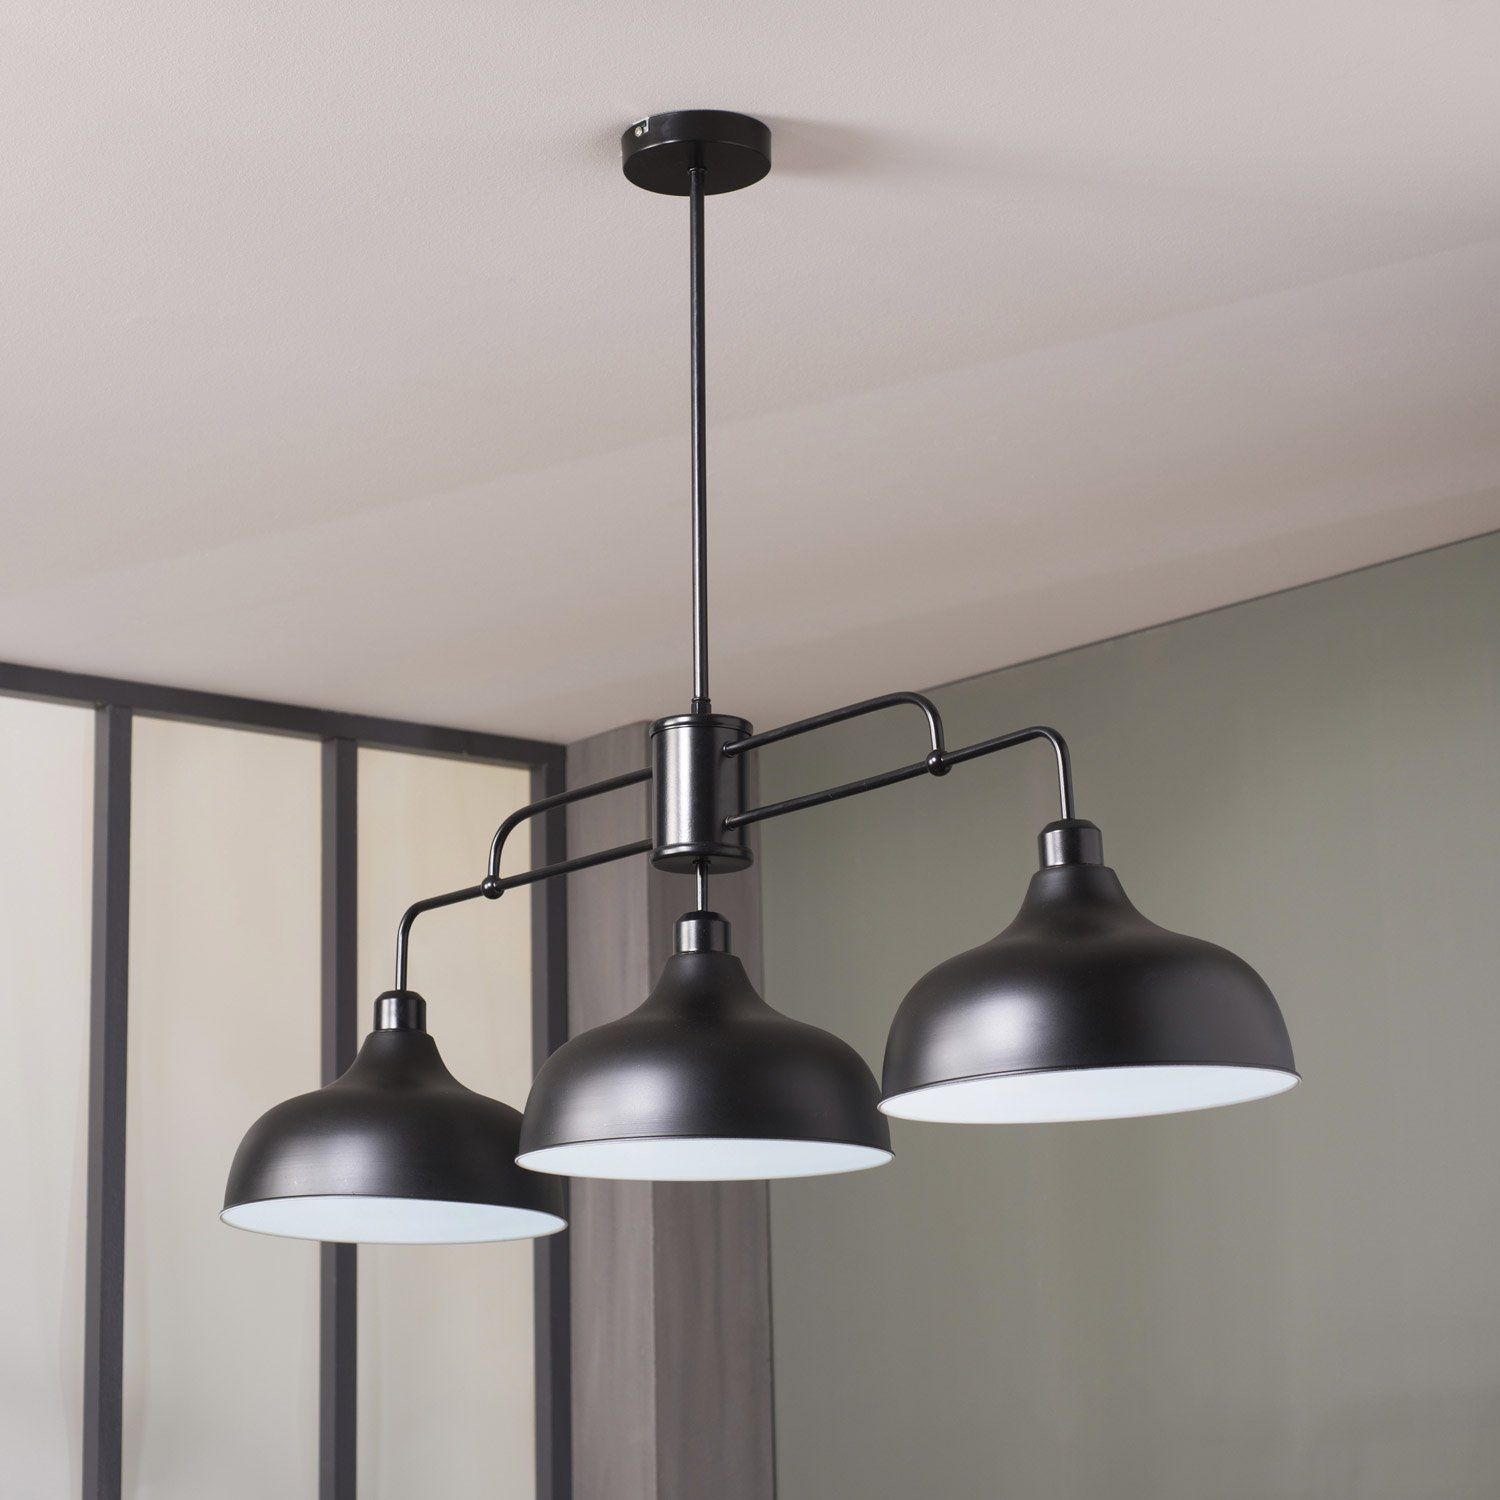 Plafonnier et suspension chez spot luminaire design - Suspension type industriel ...